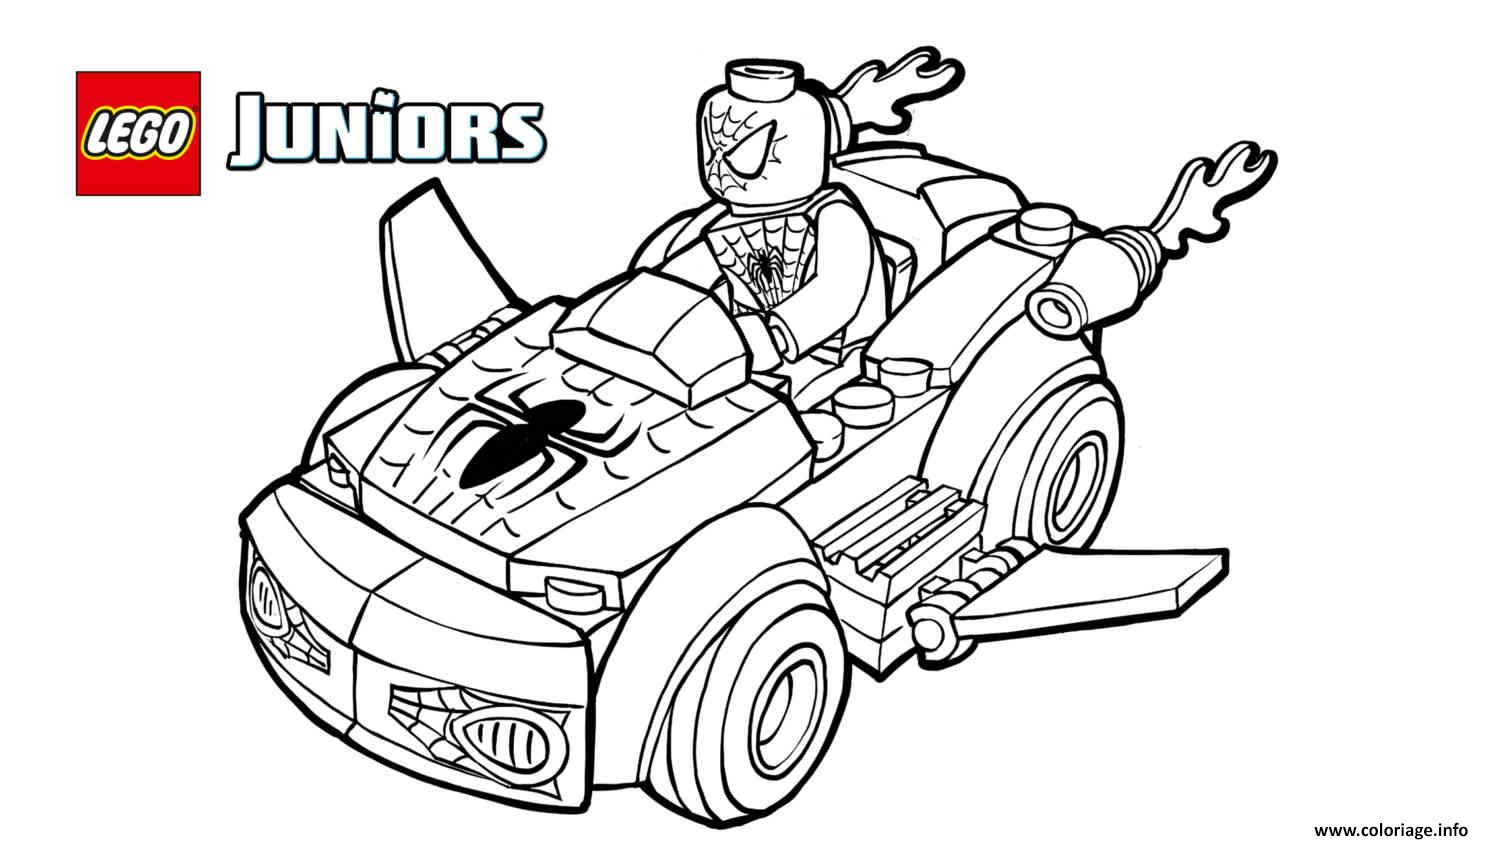 Coloriage Lego Spiderman 2 Voiture Lego Jecolorie Com